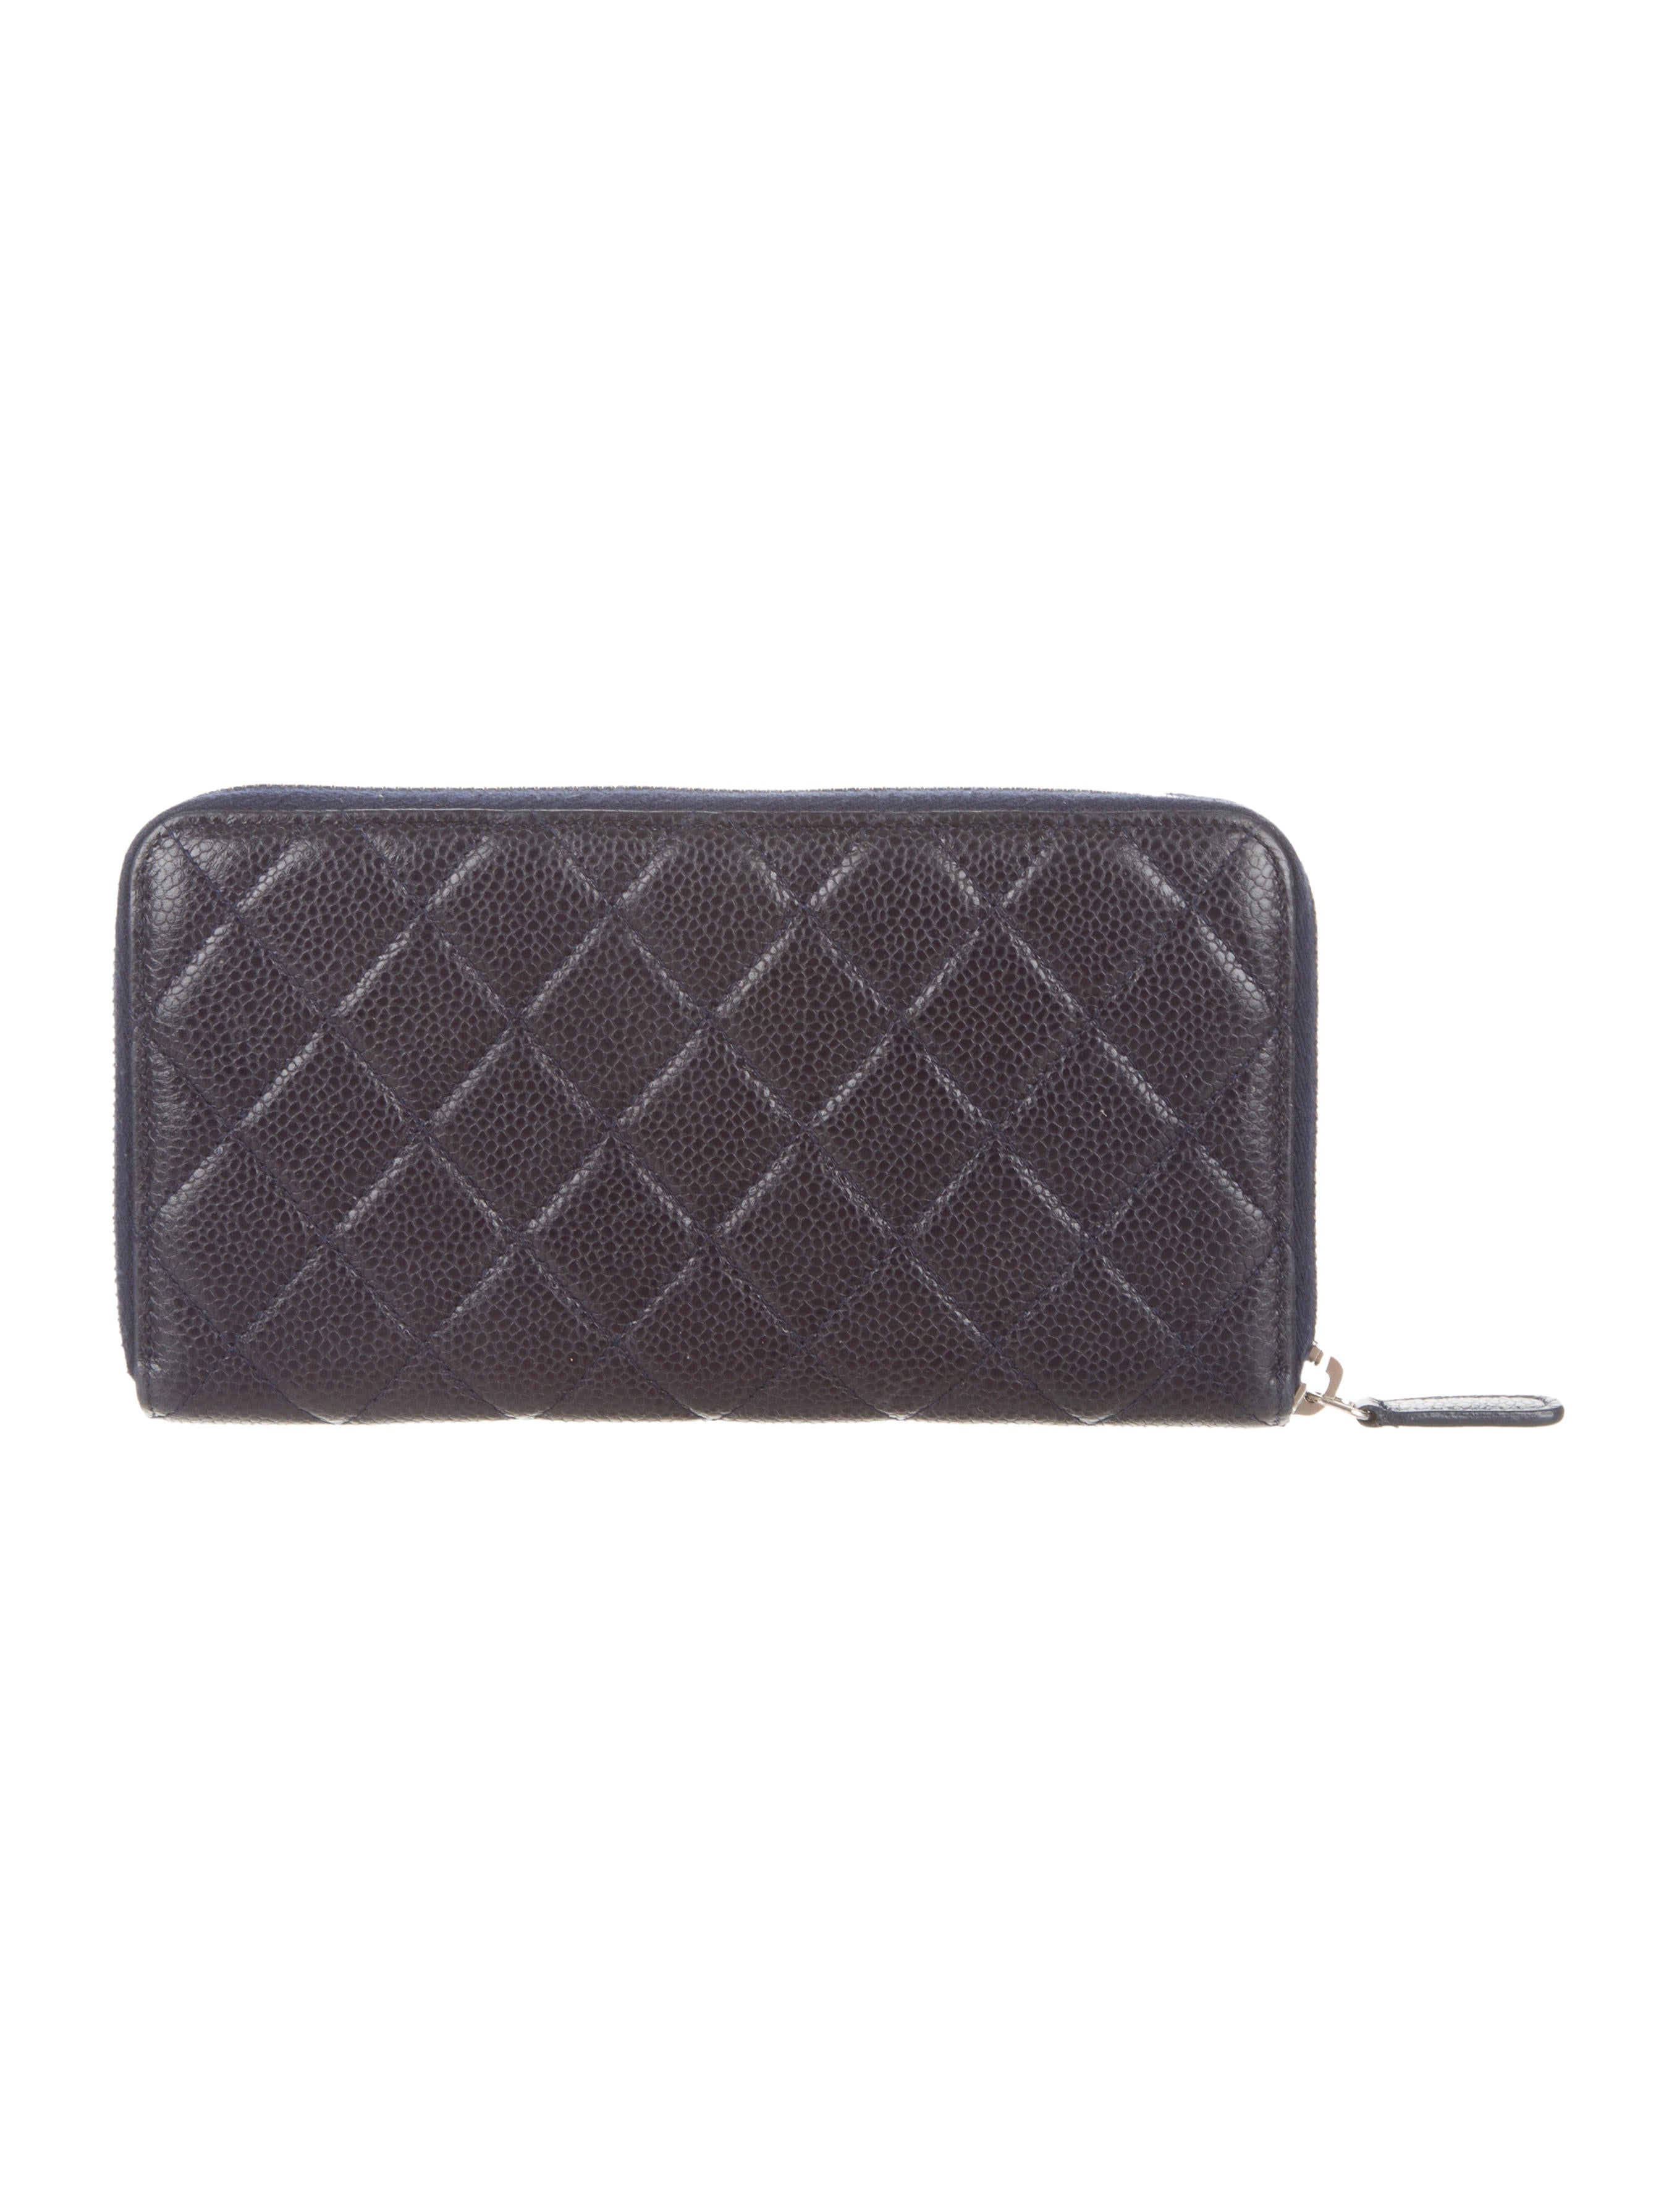 62a3b44401625b Chanel L Gusset Wallet | Stanford Center for Opportunity Policy in ...